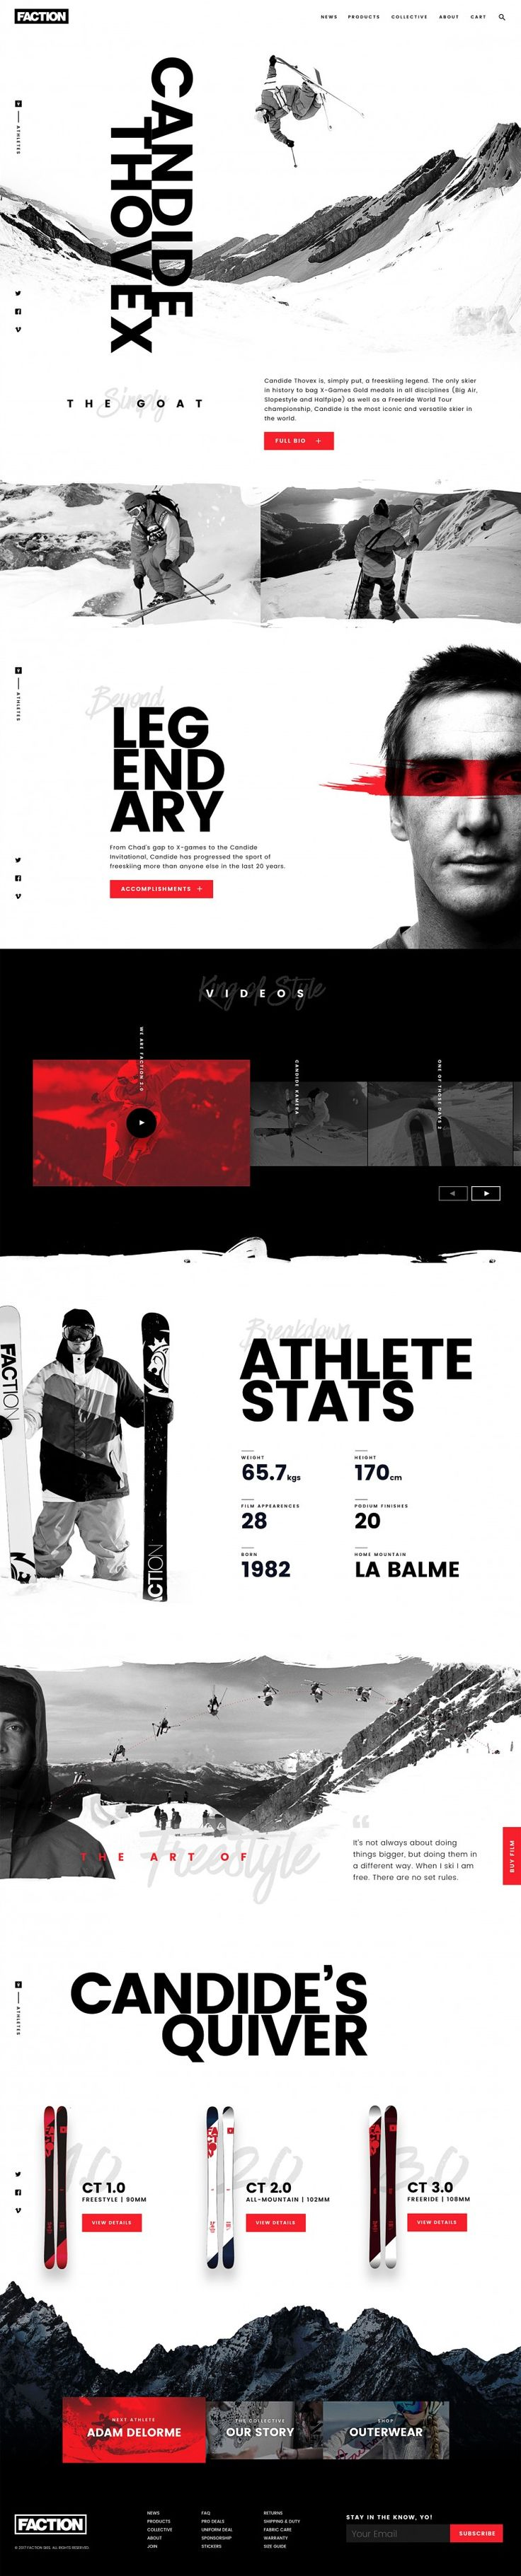 Faction Athlete Page